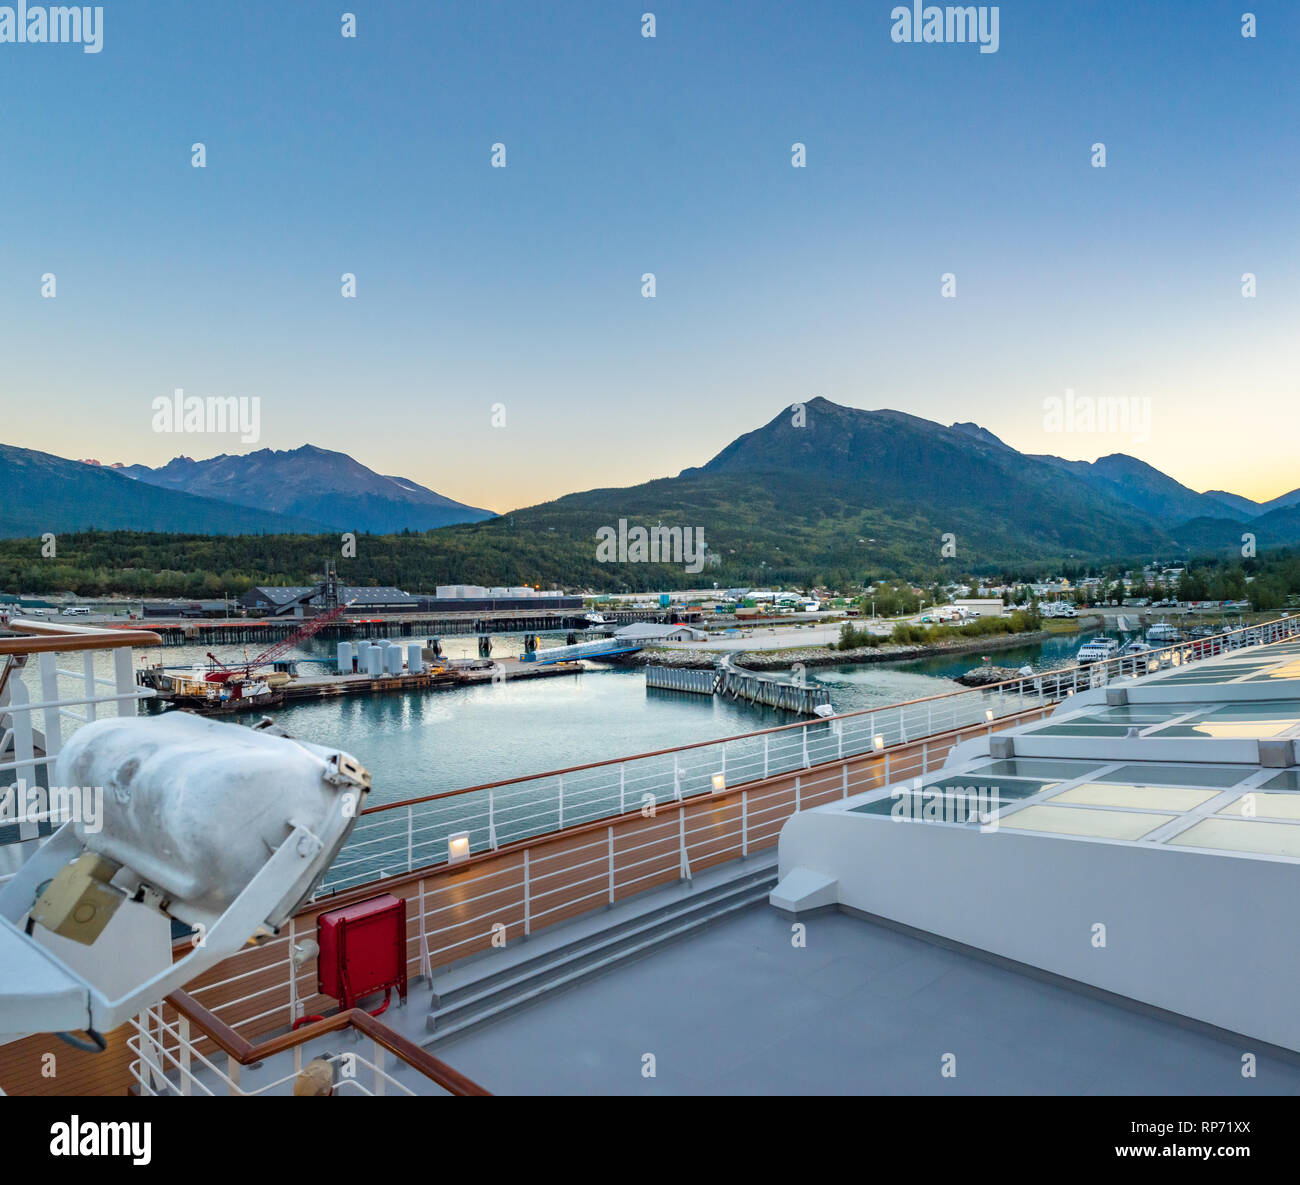 September 15, 2018 - Skagway, AK: Harbour and mountins at dawn from deck of Holland America's The Volendam cruise ship. - Stock Image